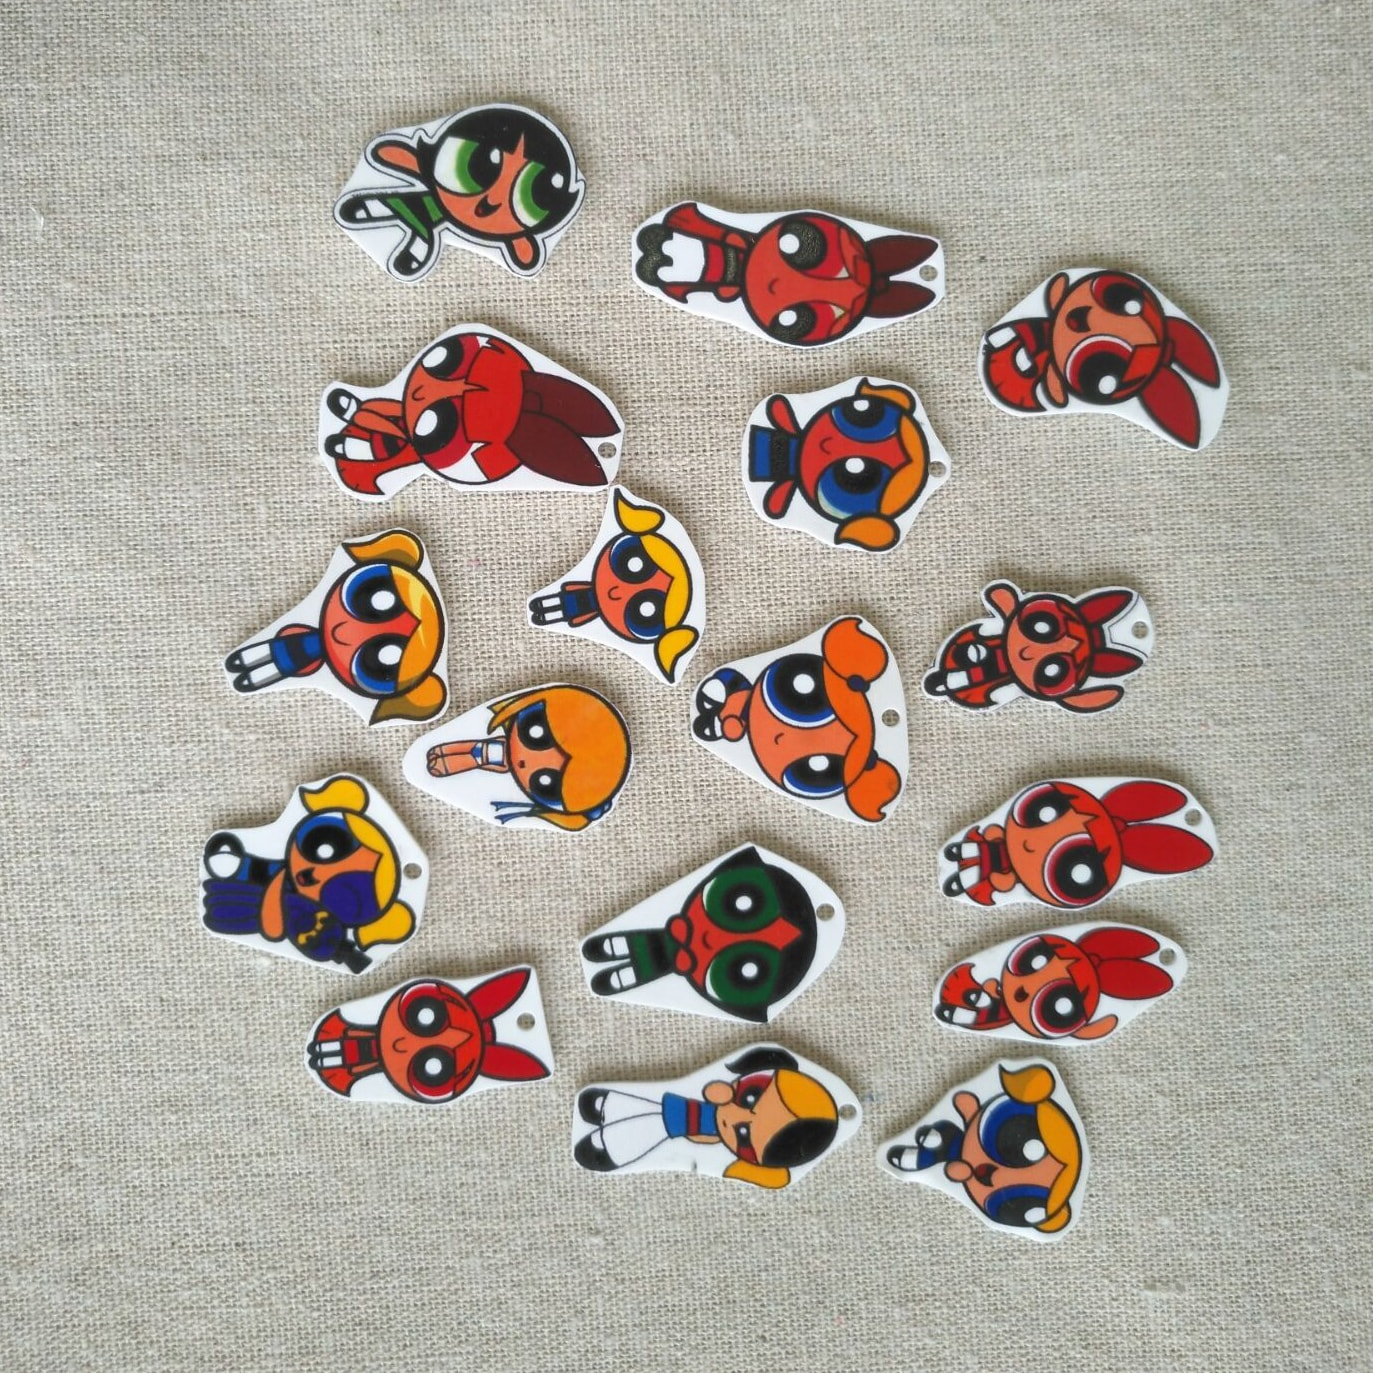 picture relating to Shrinky Dinks Printable identify Inkjet printing shrinky dinks movie - Shrinky Dinks Do-it-yourself